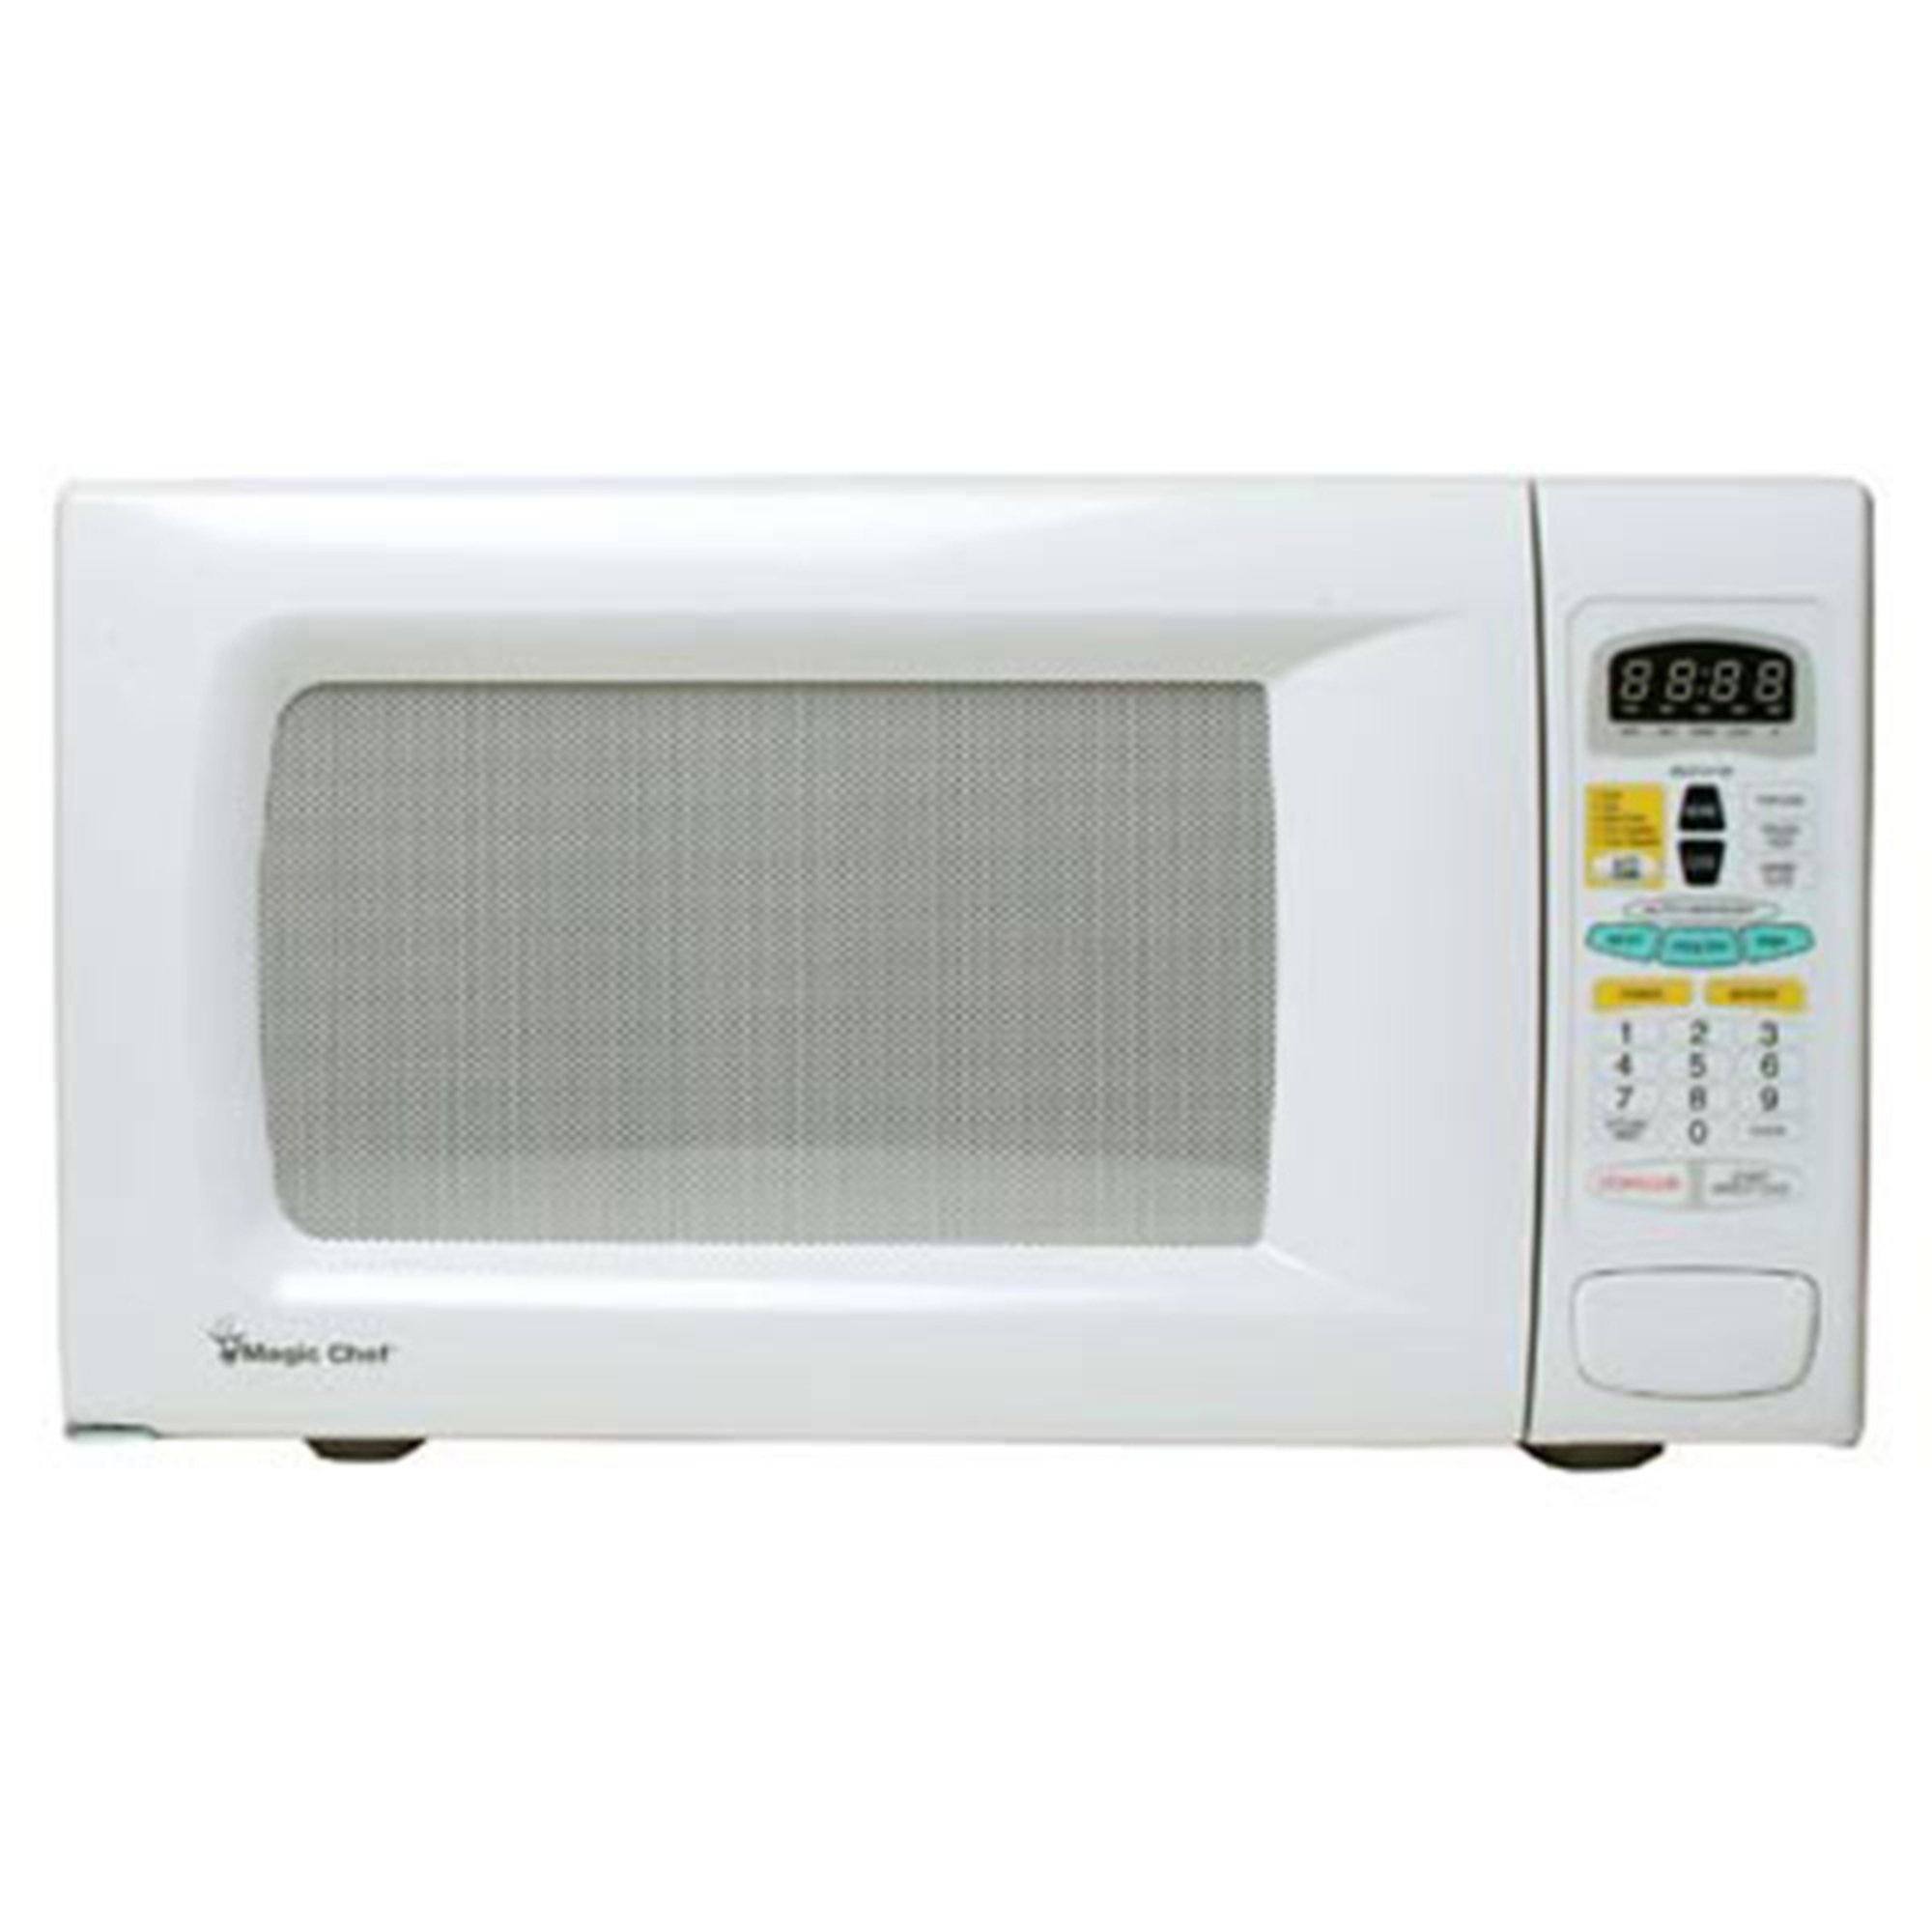 Countertop Microwave For Sale : Magic Chef 1.3-cuft Microwave - White Countertop Microwaves For ...